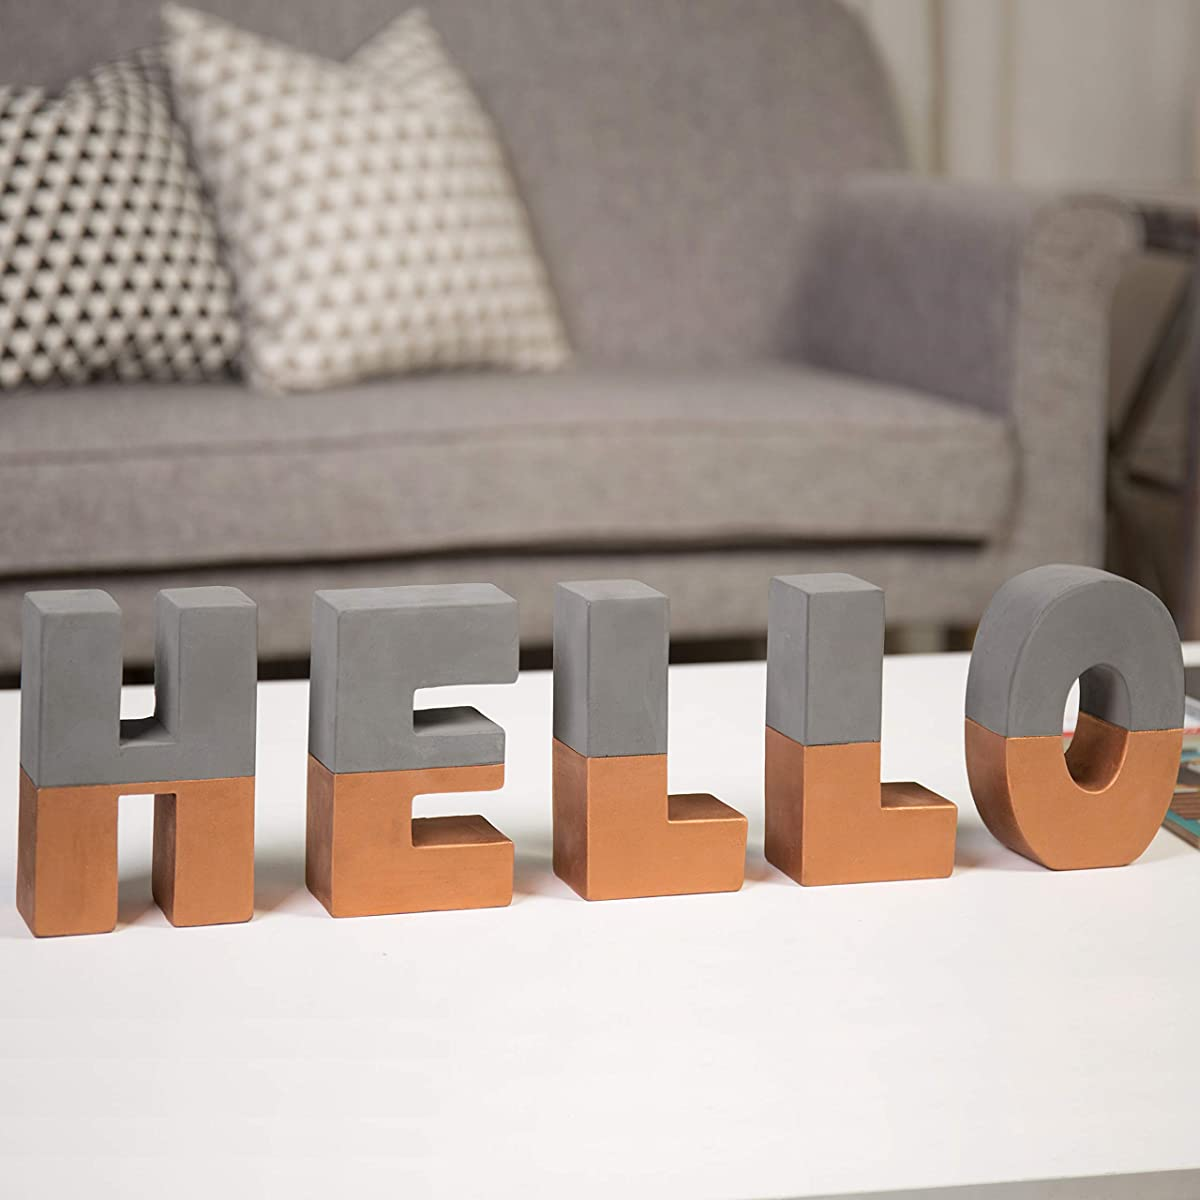 MyGift Hello Block Letters Sign Decorative 3D Standing Cement Word Art with Copper-Tone Accent